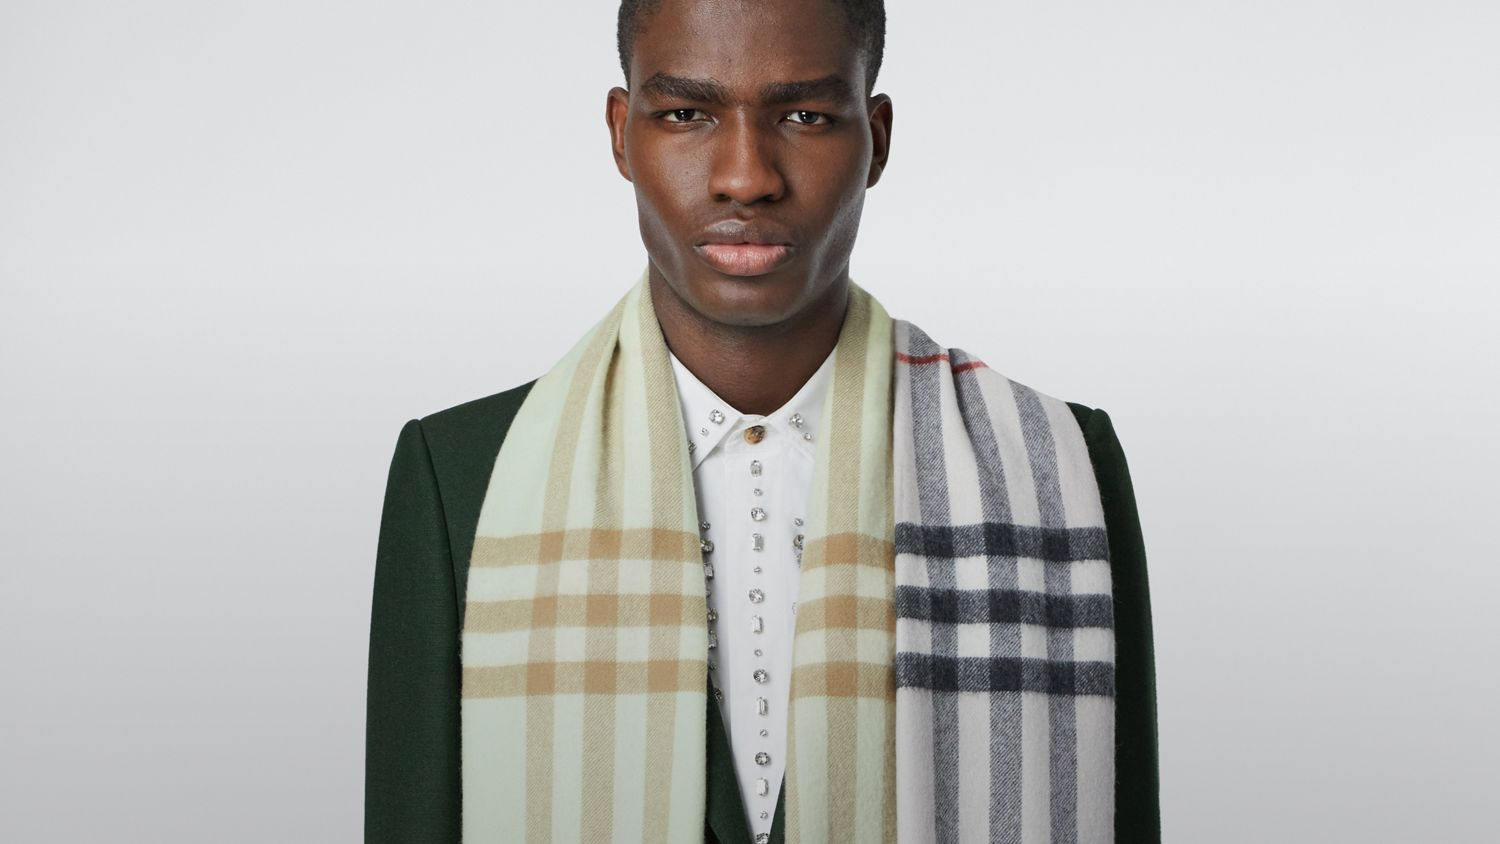 Schaldesigns von Burberry